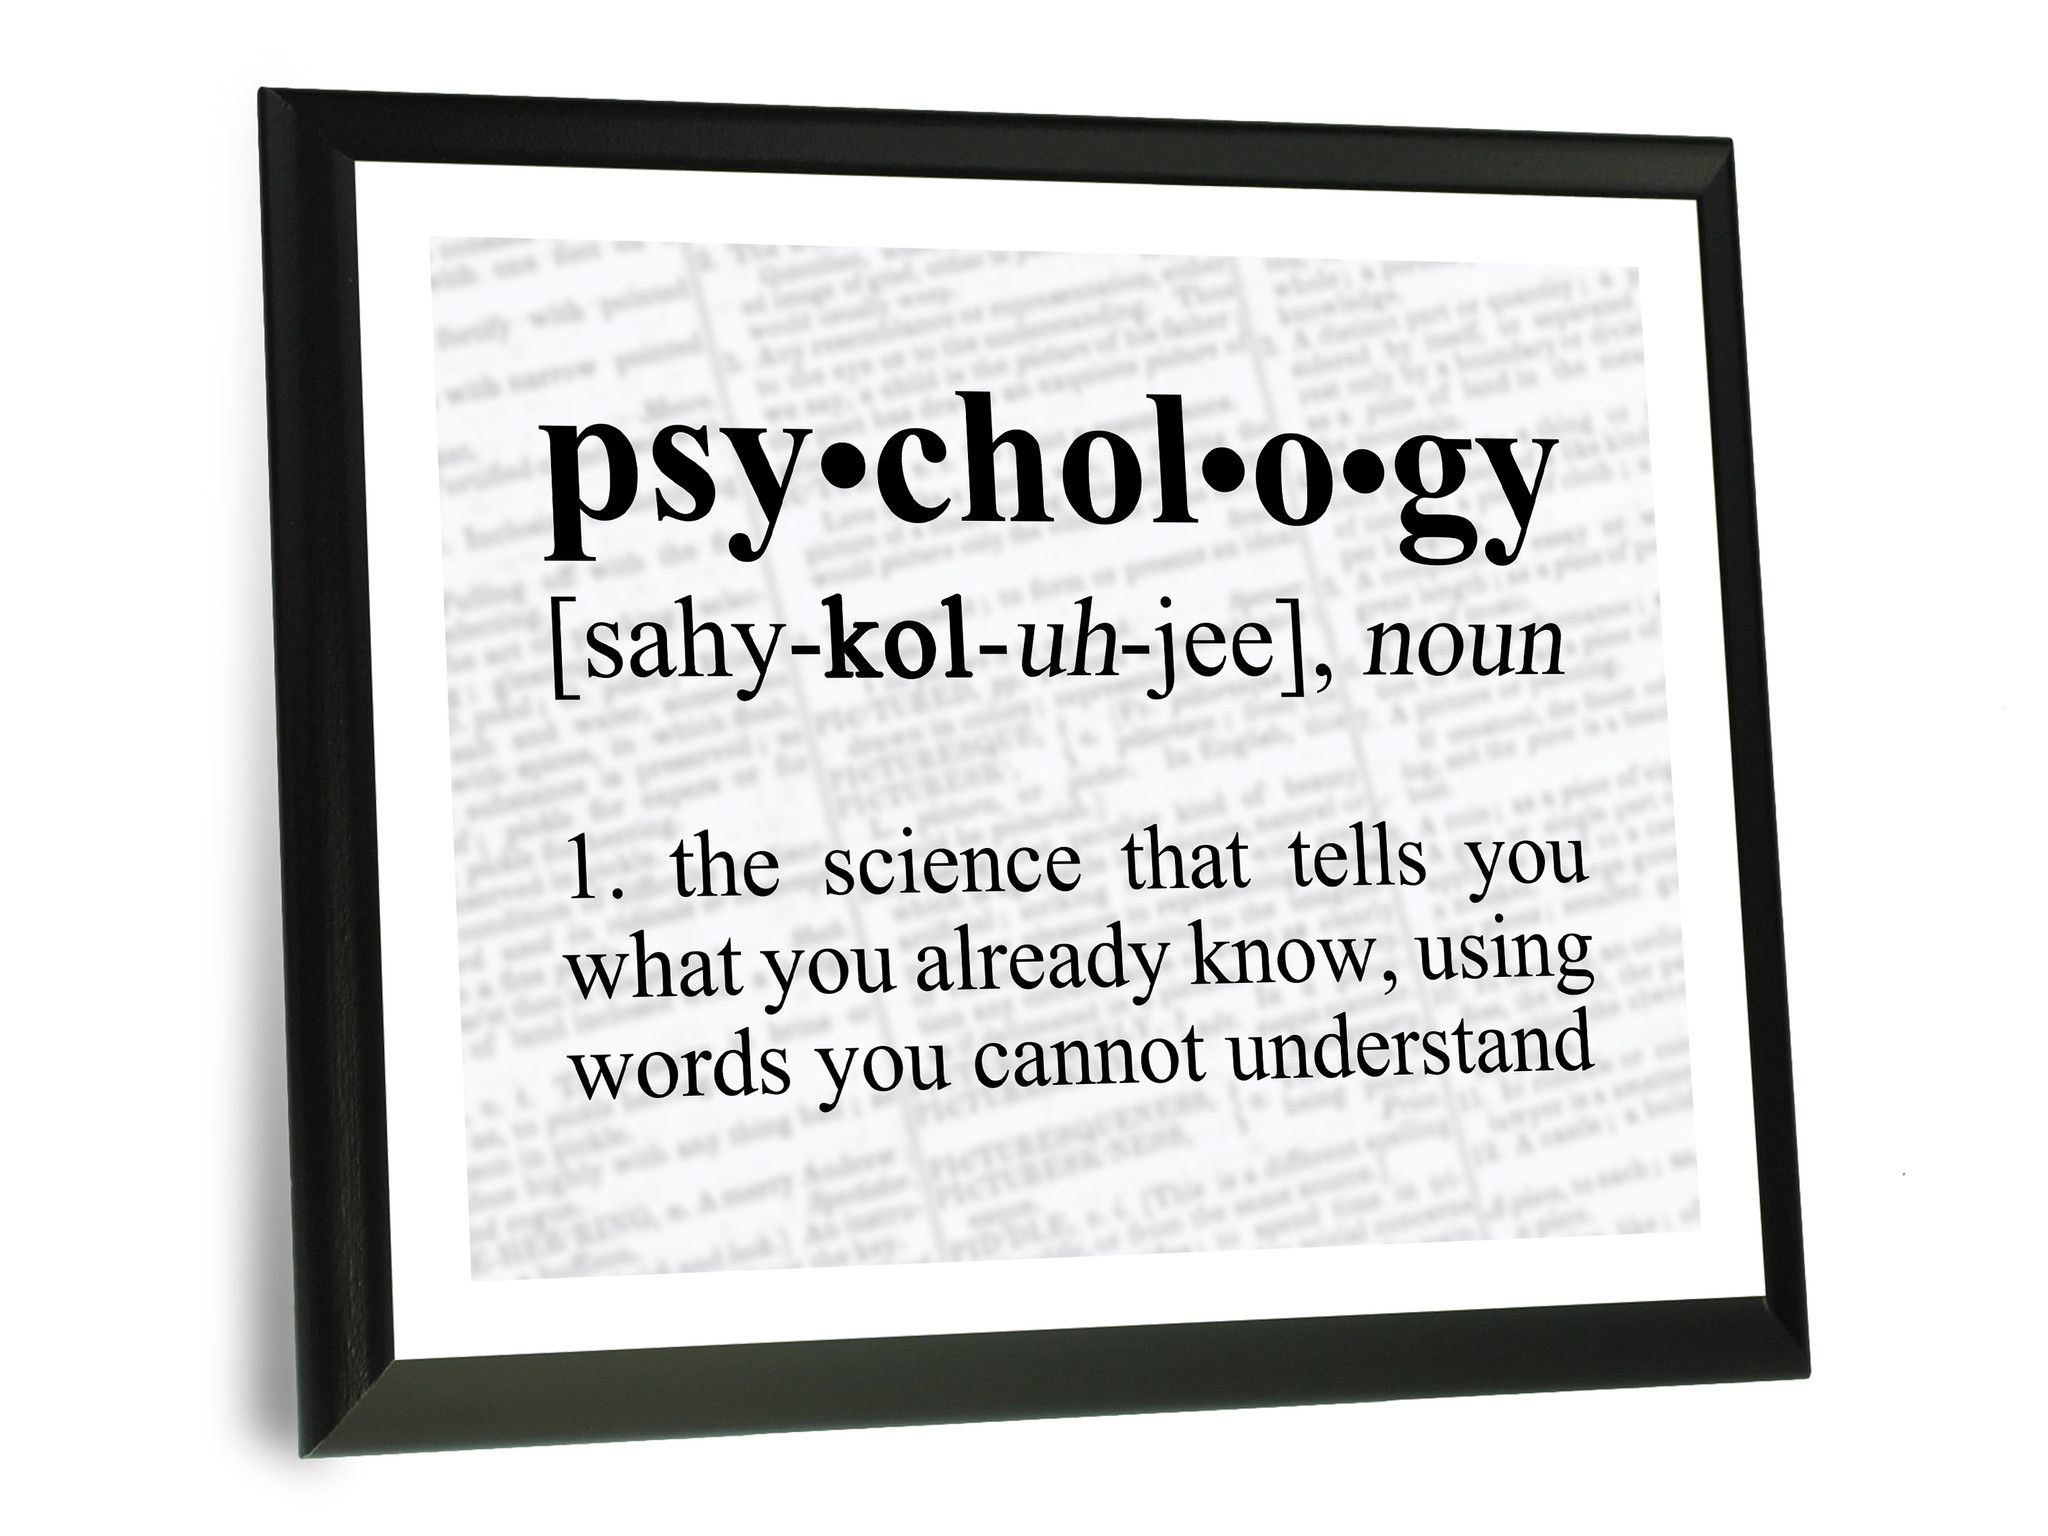 Psychology Definition Funny Typography Wall Plaque 9x12